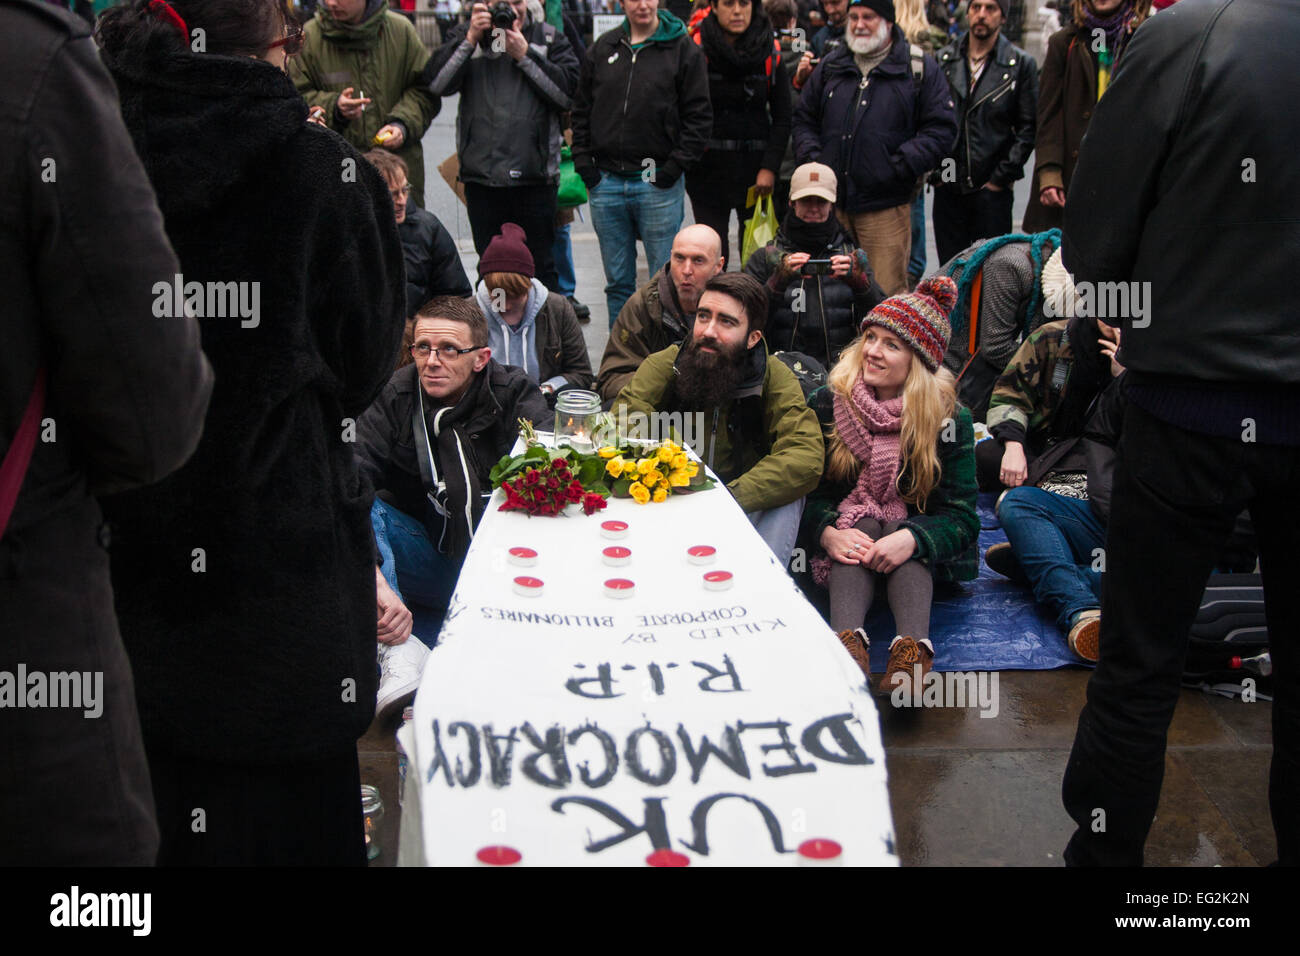 London, February 14th 2015. A few dozen activists from Occupy Democracy gather at Parliament Sqyuuare to hold a - Stock Image